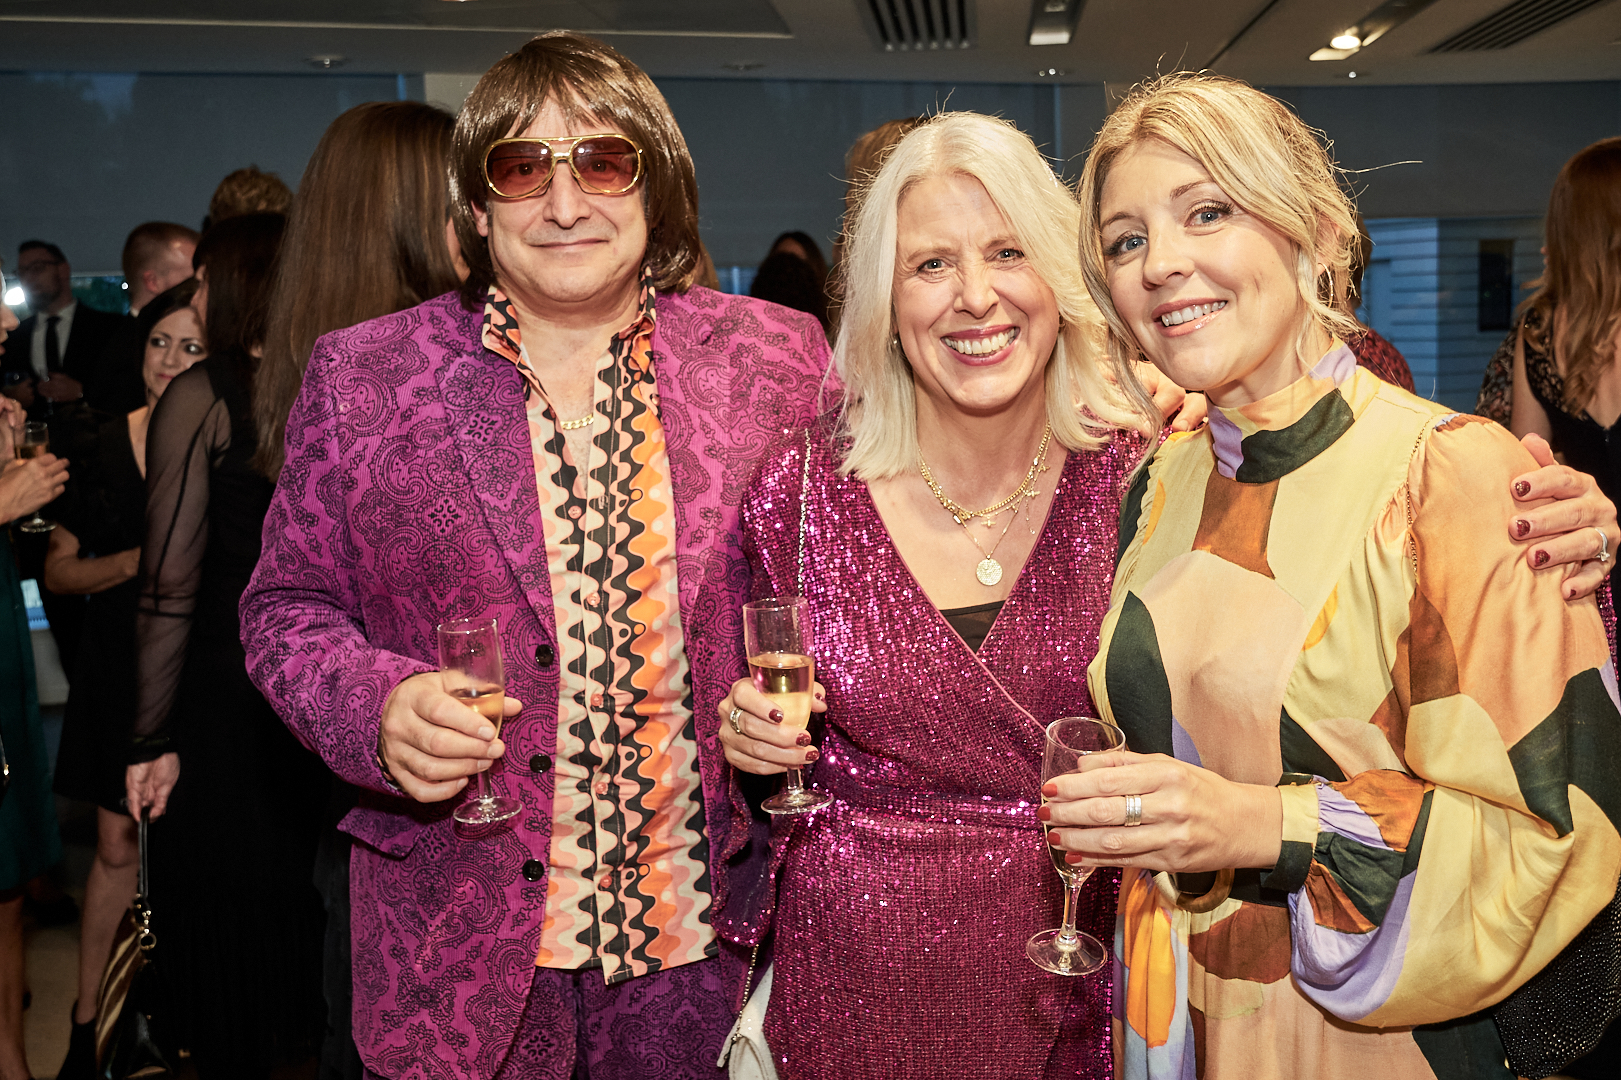 Above: Rush Design's Ian and (centre) Lorraine Bradley with Laura Darrington at the Windles drinks reception.